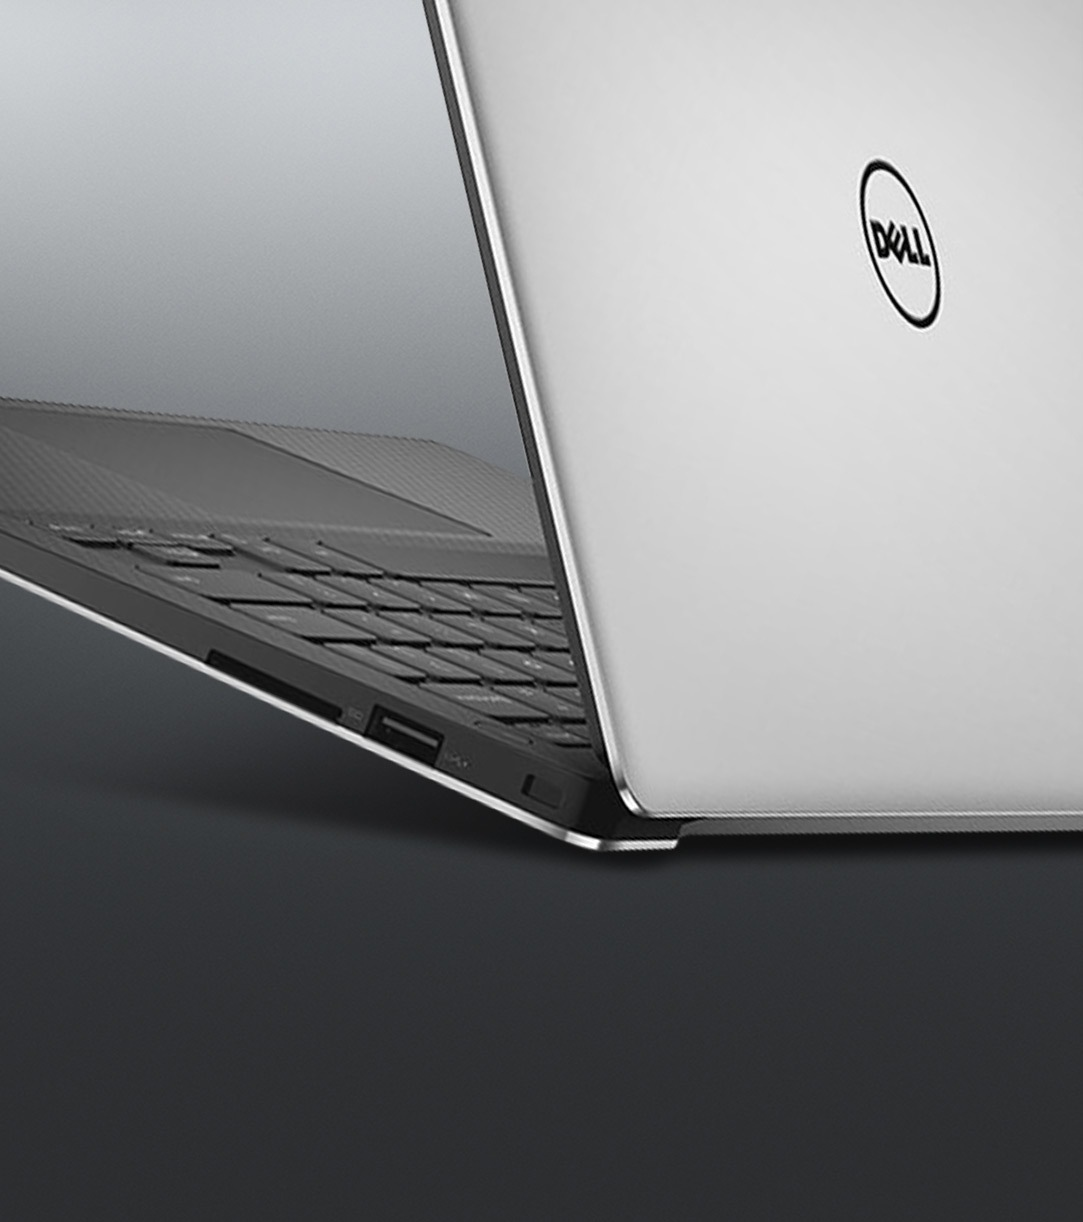 A partial image of the Dell XPS 15